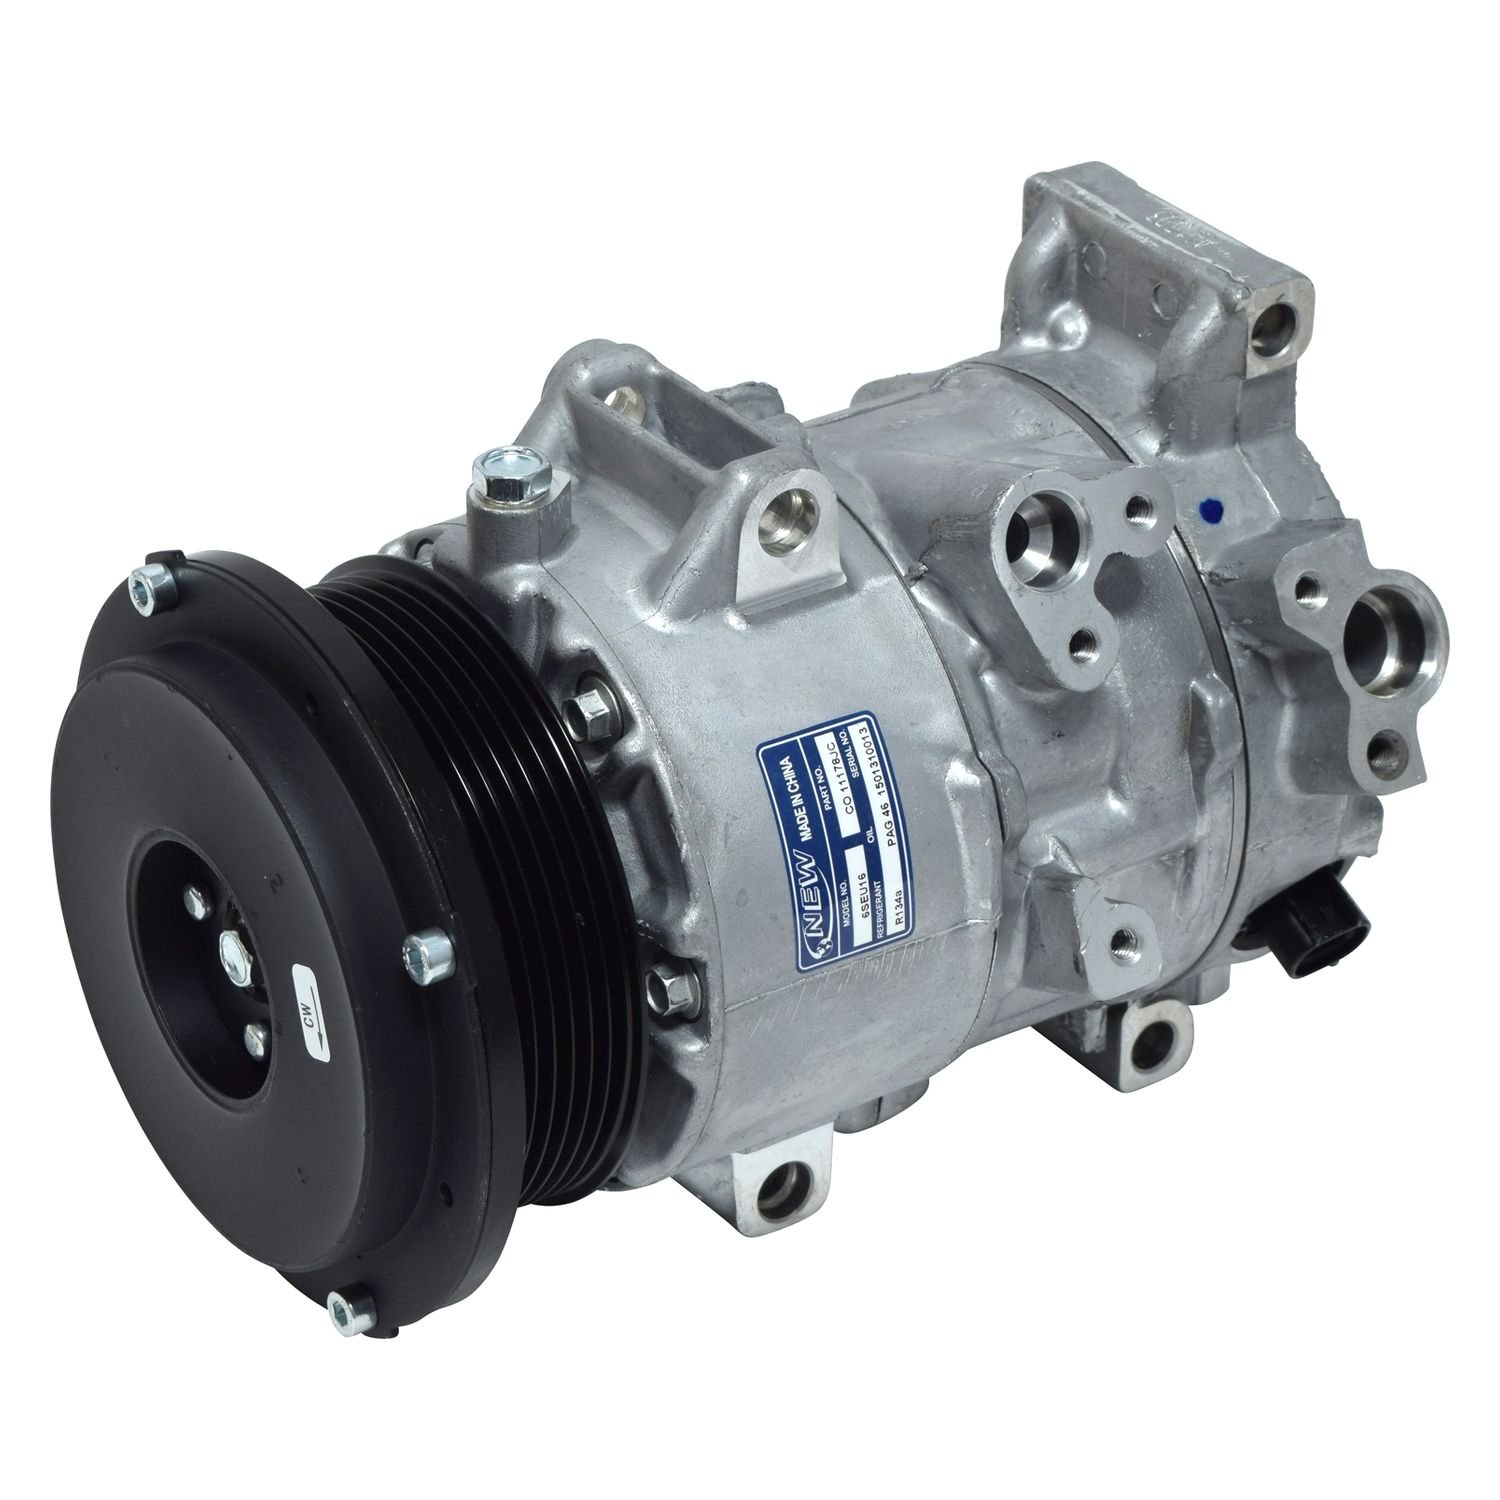 Chevrolet Celebrity AC Compressor Replacement Cost